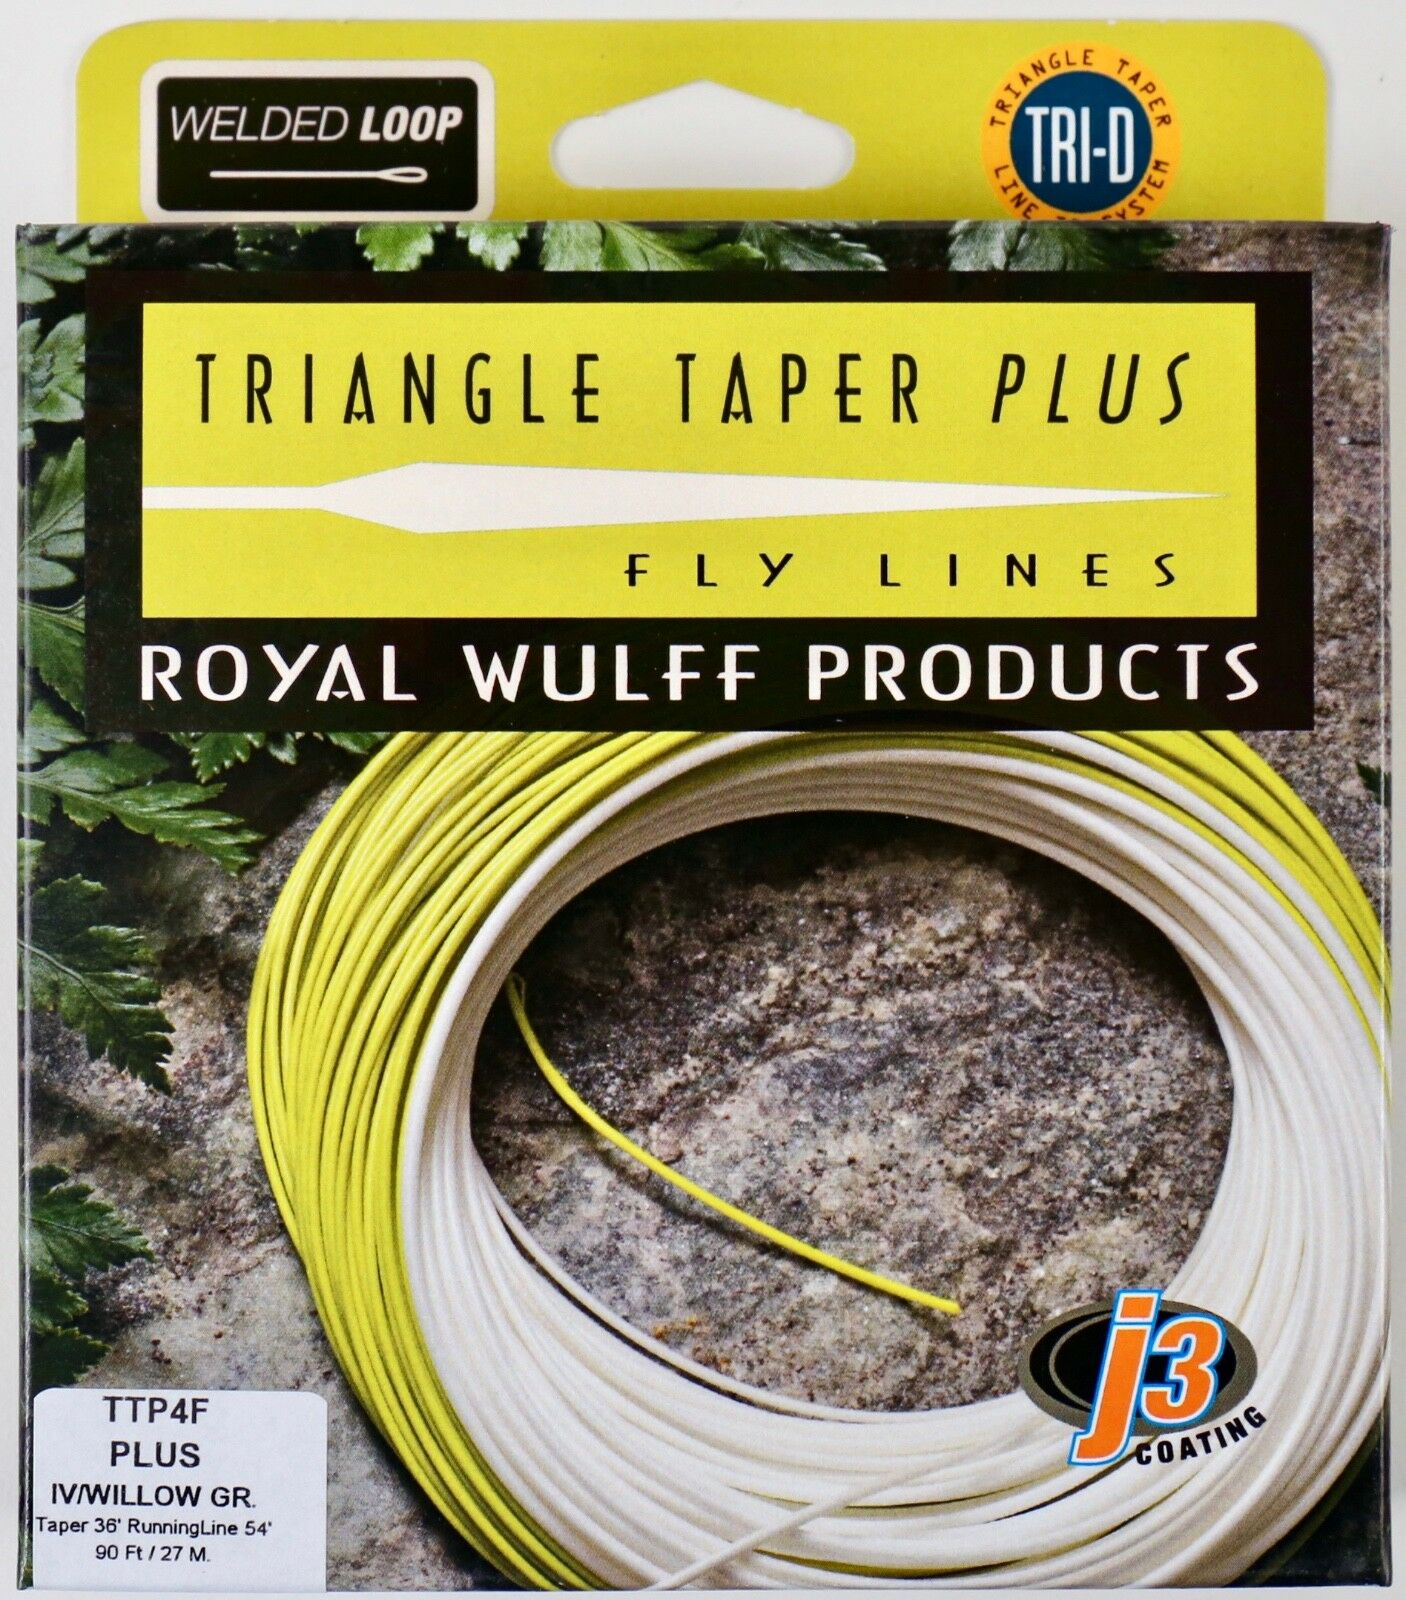 Royal Wulff Triangle Taper Plus 4 WT Floating Fly Line Free Fast Shipping TTP4F